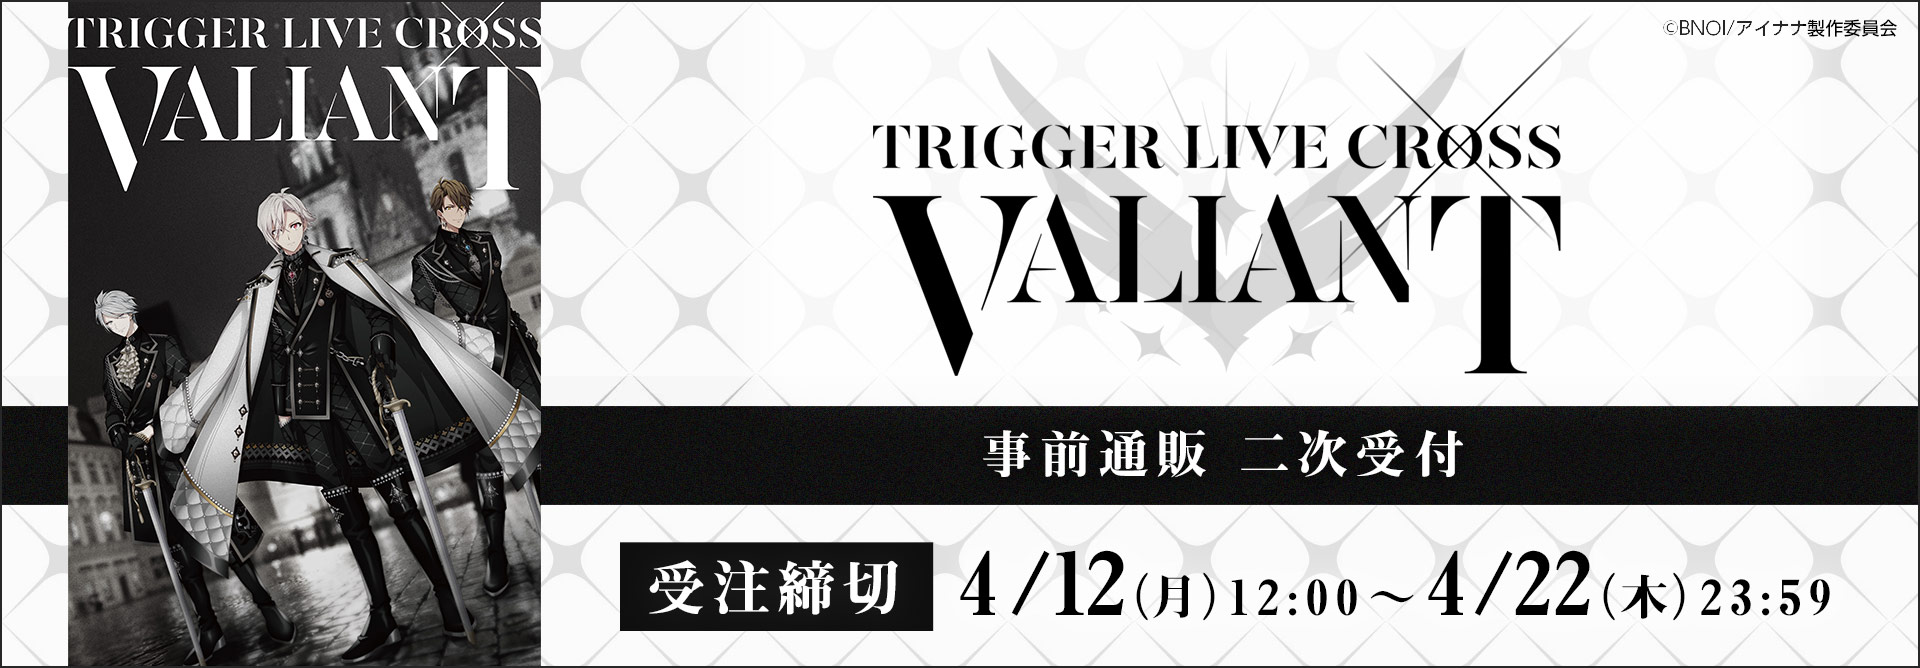 TRIGGER LIVE CROSS VALIANT 事前通販